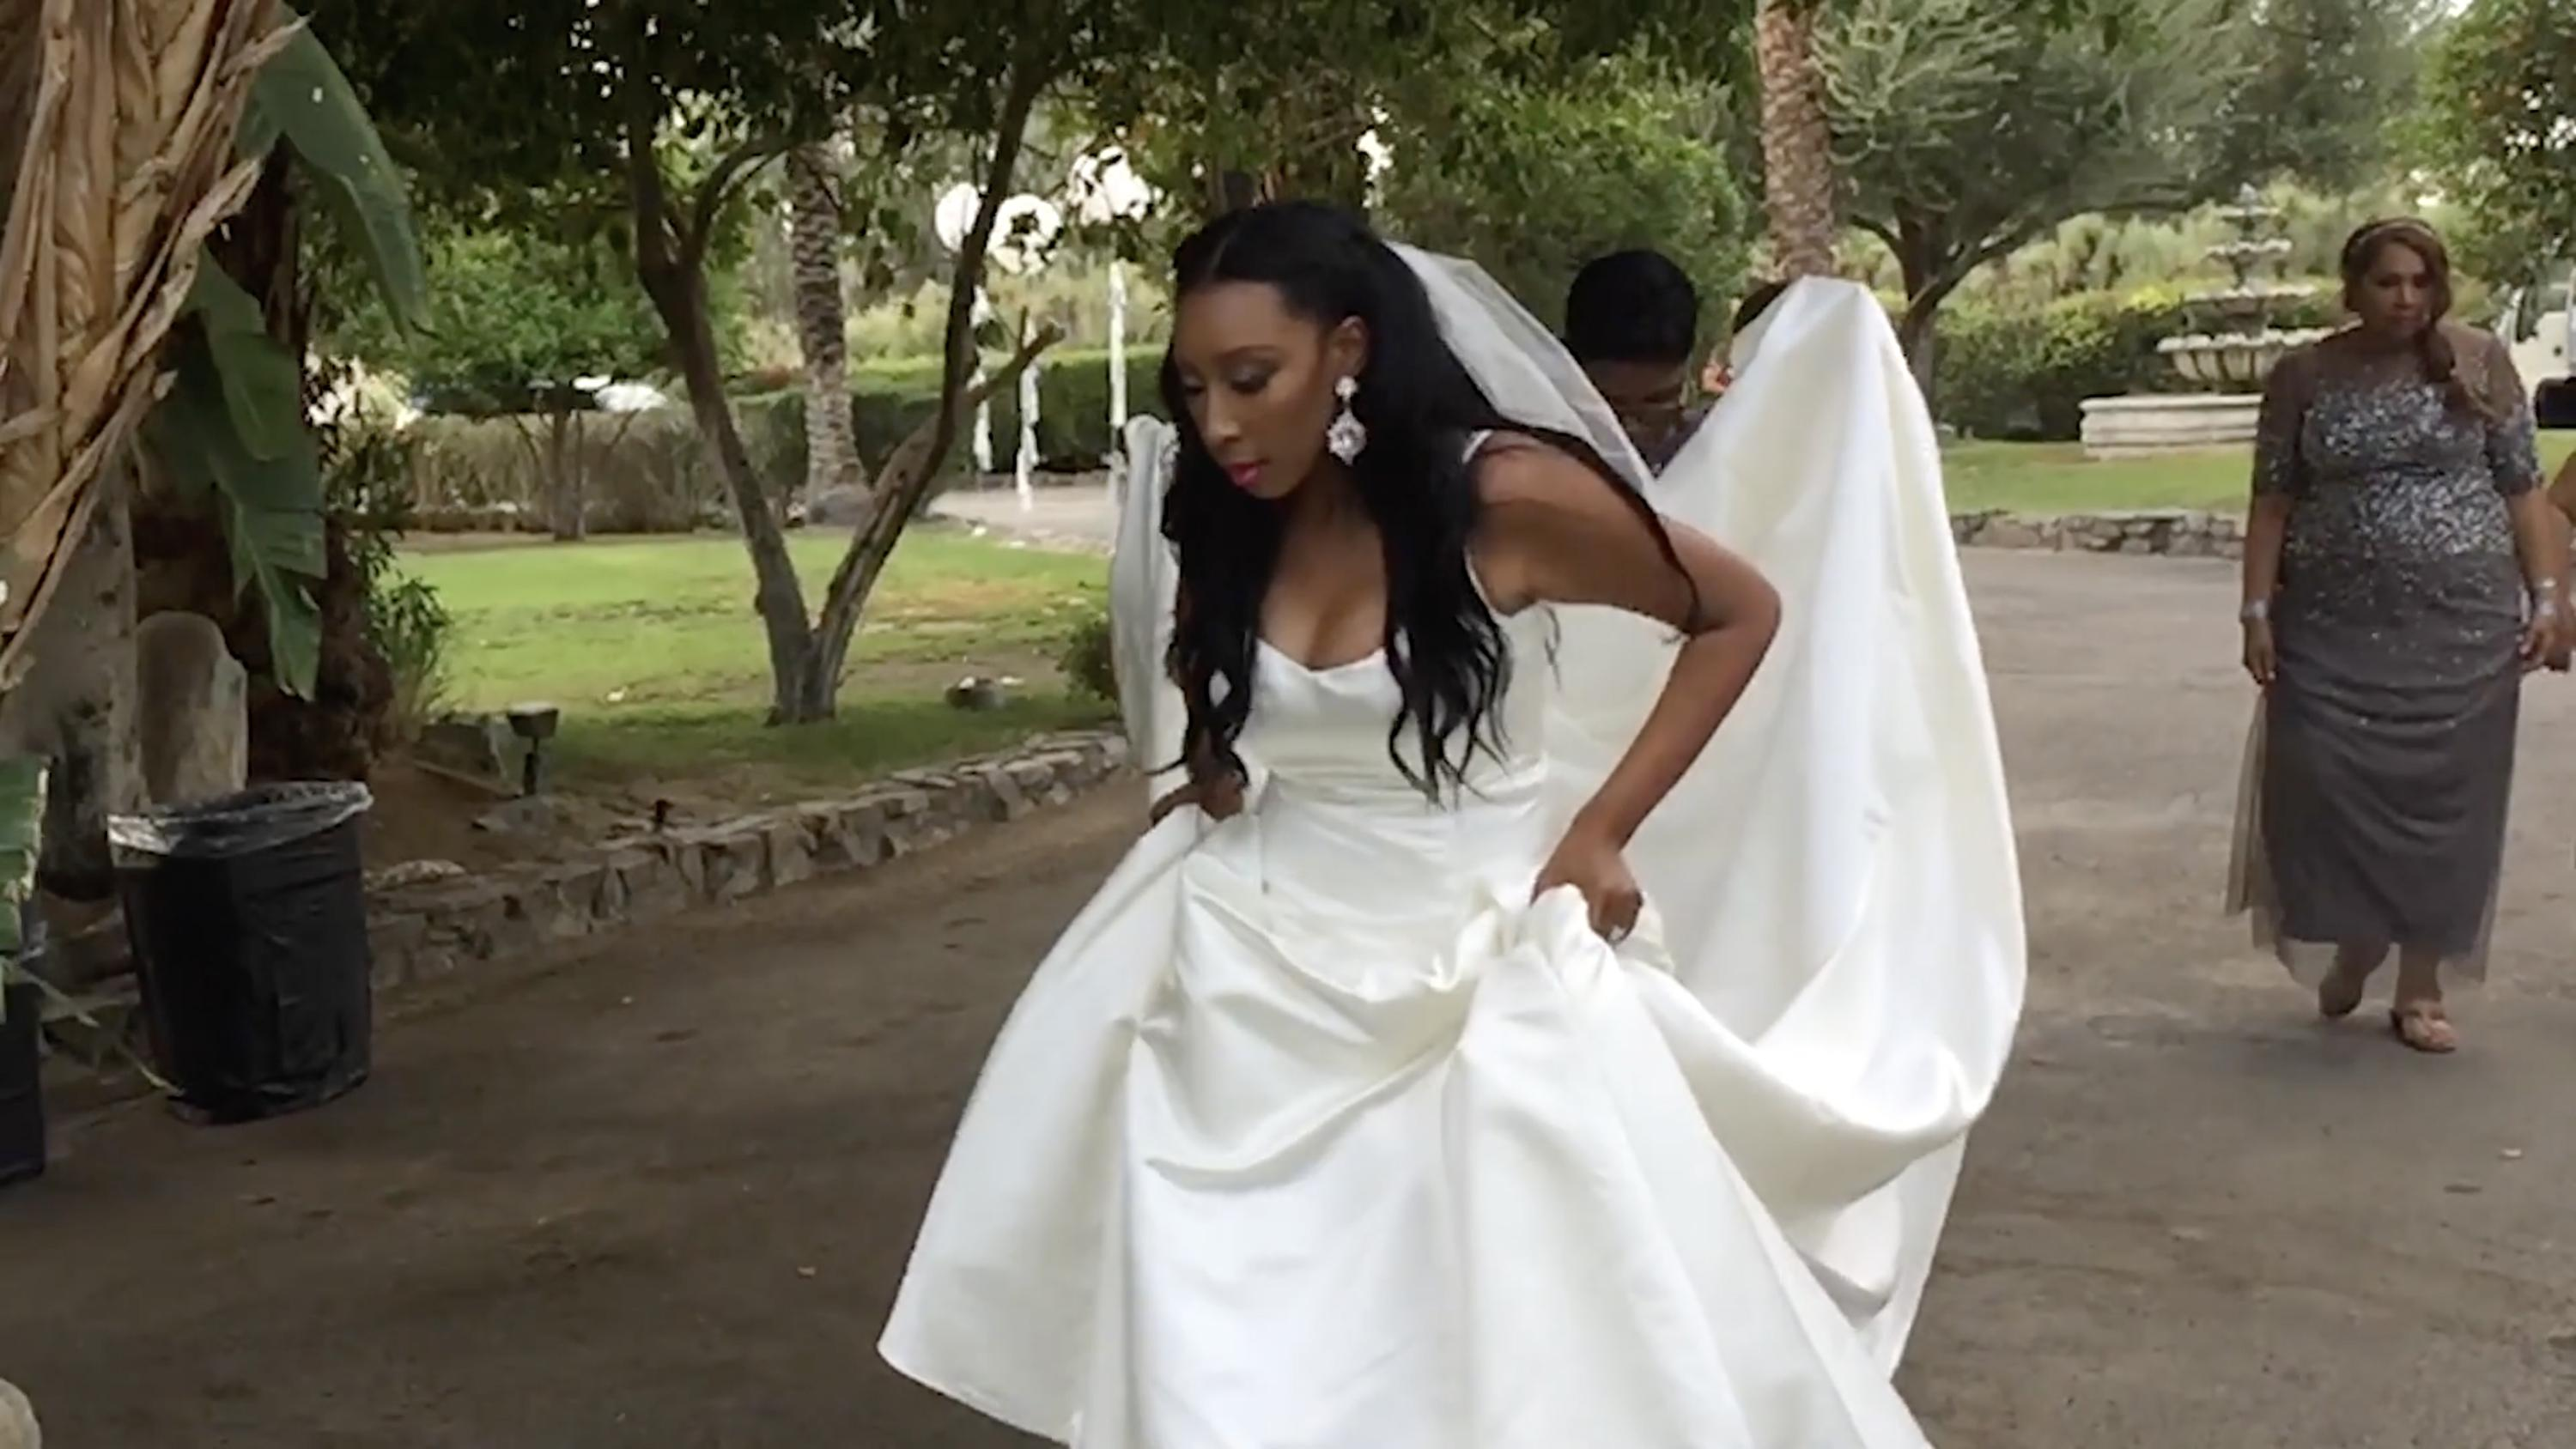 A dark-skinned woman with her hair and makeup done wears a sleeveless wedding dress with a long train, held by another person behind her. She holds up the dress and looks down toward the path ahead of her.